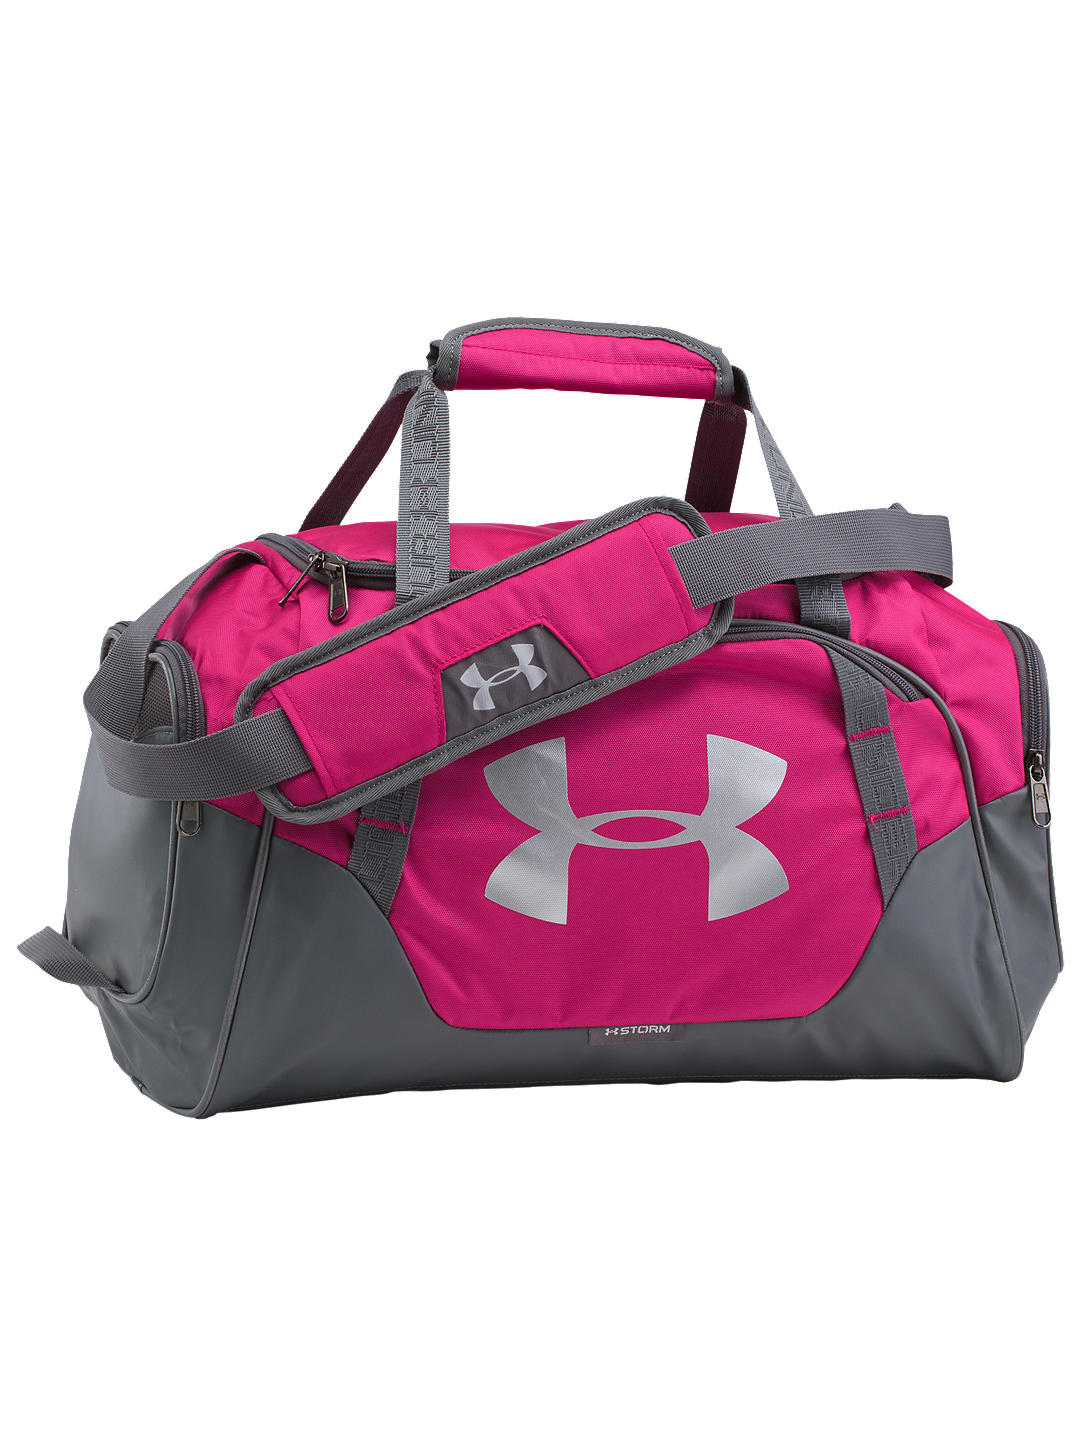 87d52e7a364f Under Armour Undeniable 3.0 Small Duffel Bag